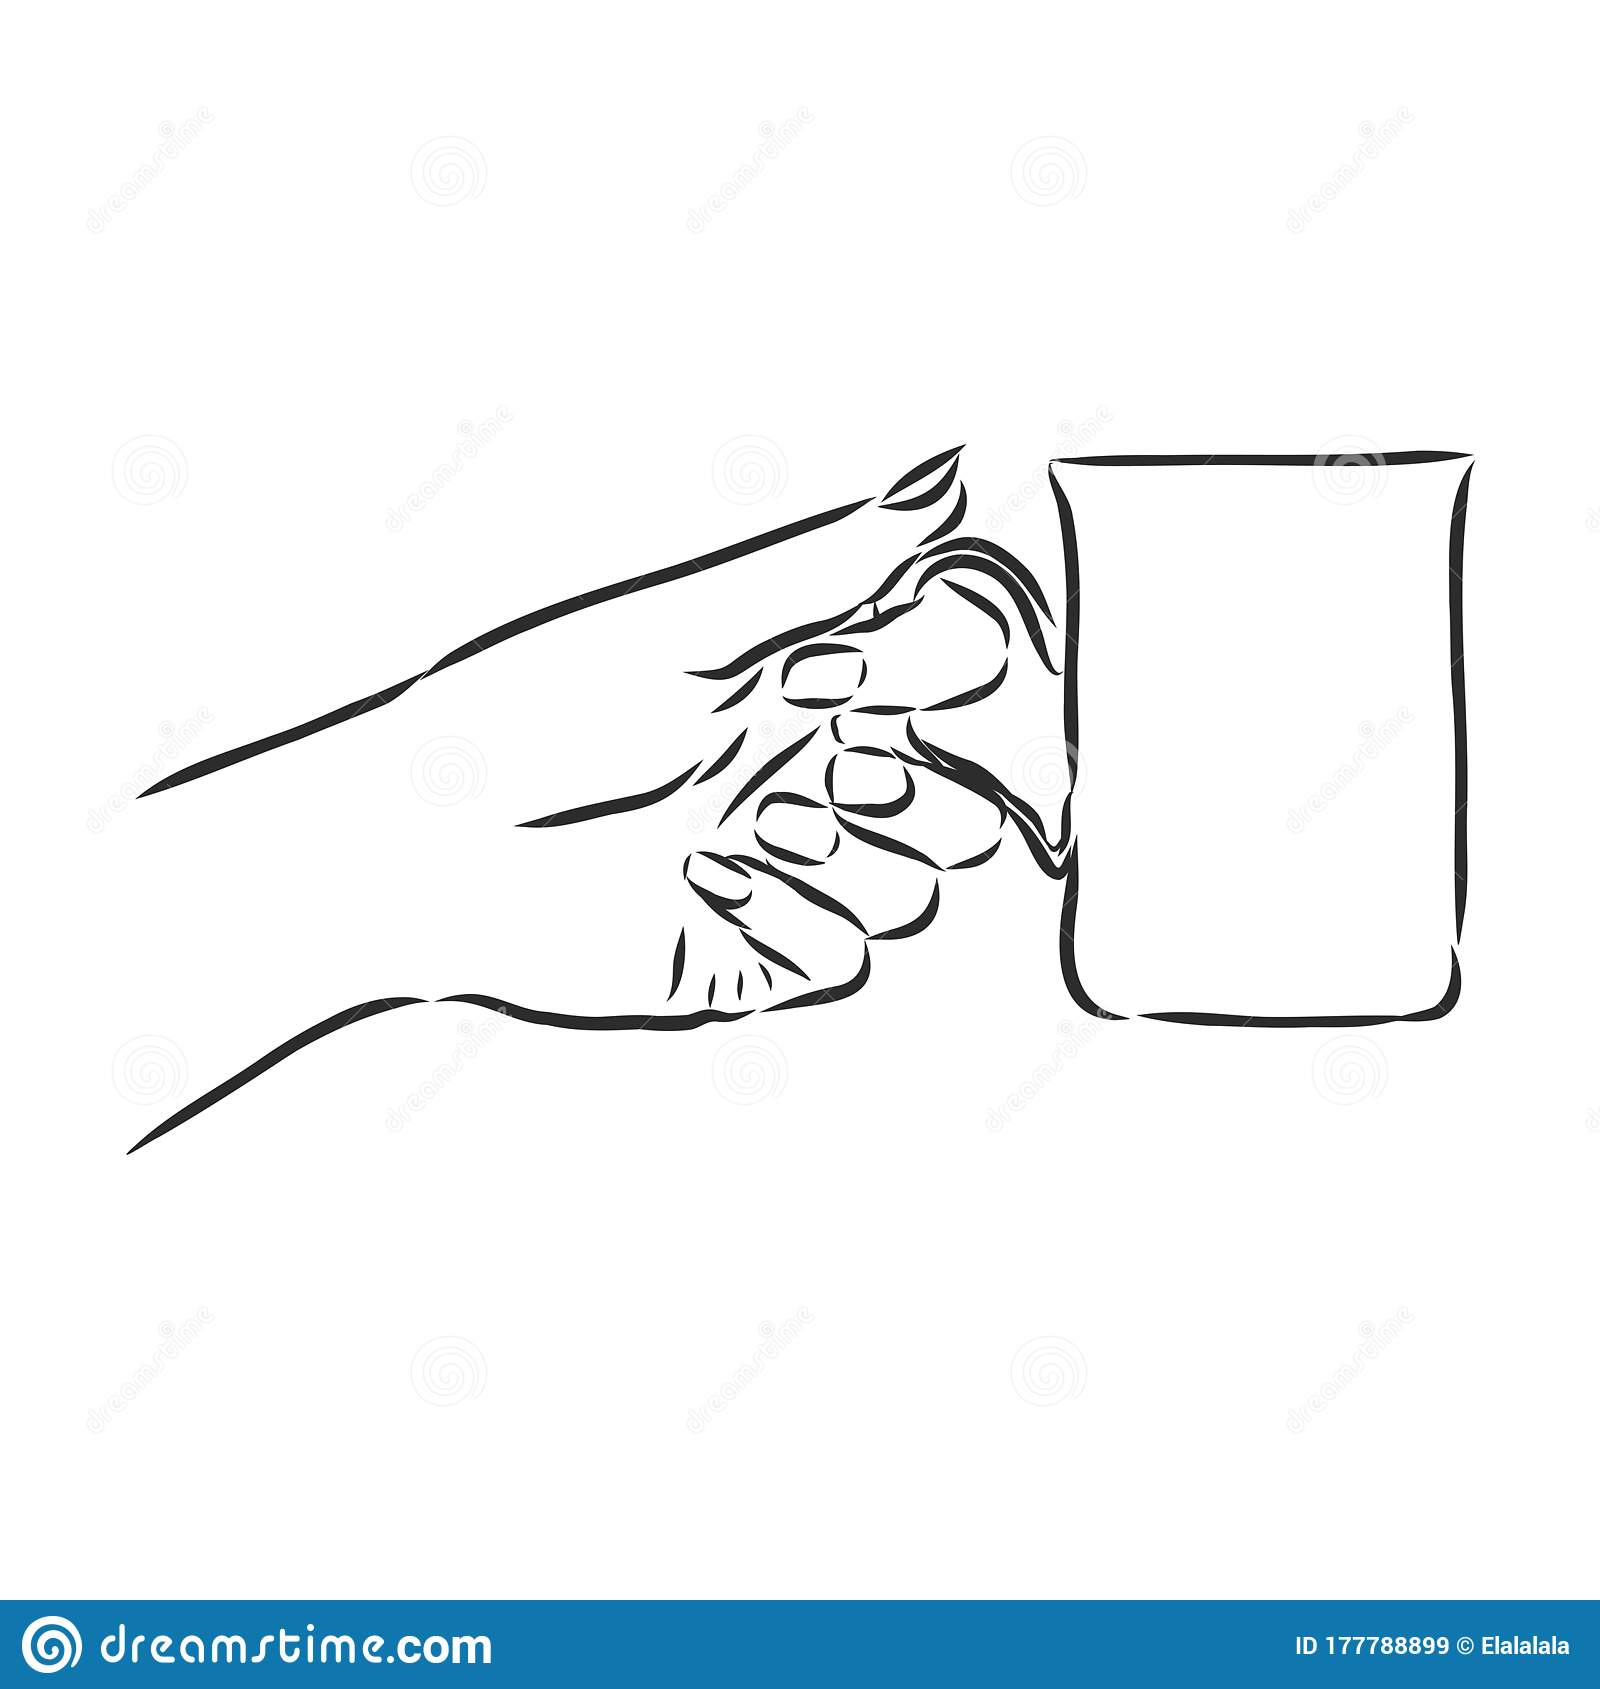 Sketch Style Realistic Drawing Of Beautiful Hand Holding A Mug With A Hot Beverage Stock Illustration Illustration Of Coffee Relaxation 177788899